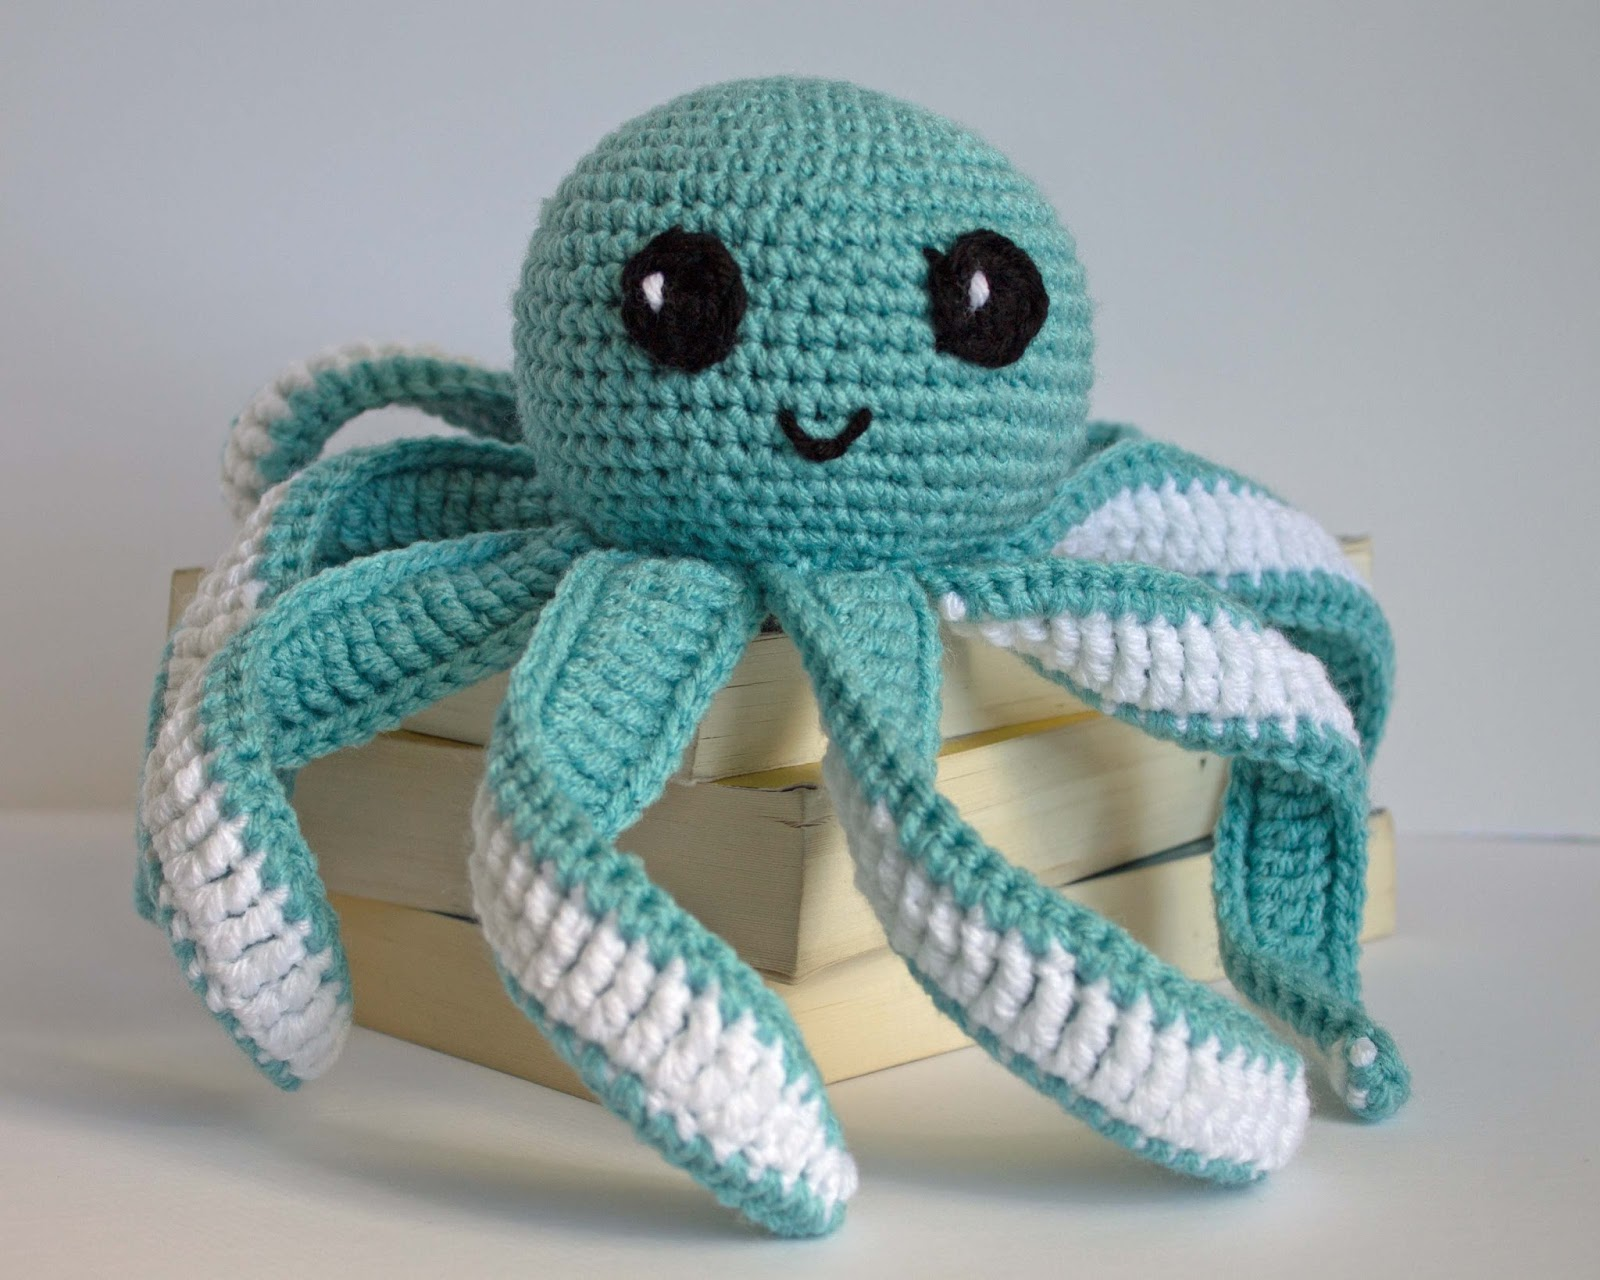 Cute Panda Amigurumi Pattern : Amigurumi Octopus Baby Toy Free Pattern - The Friendly Red Fox